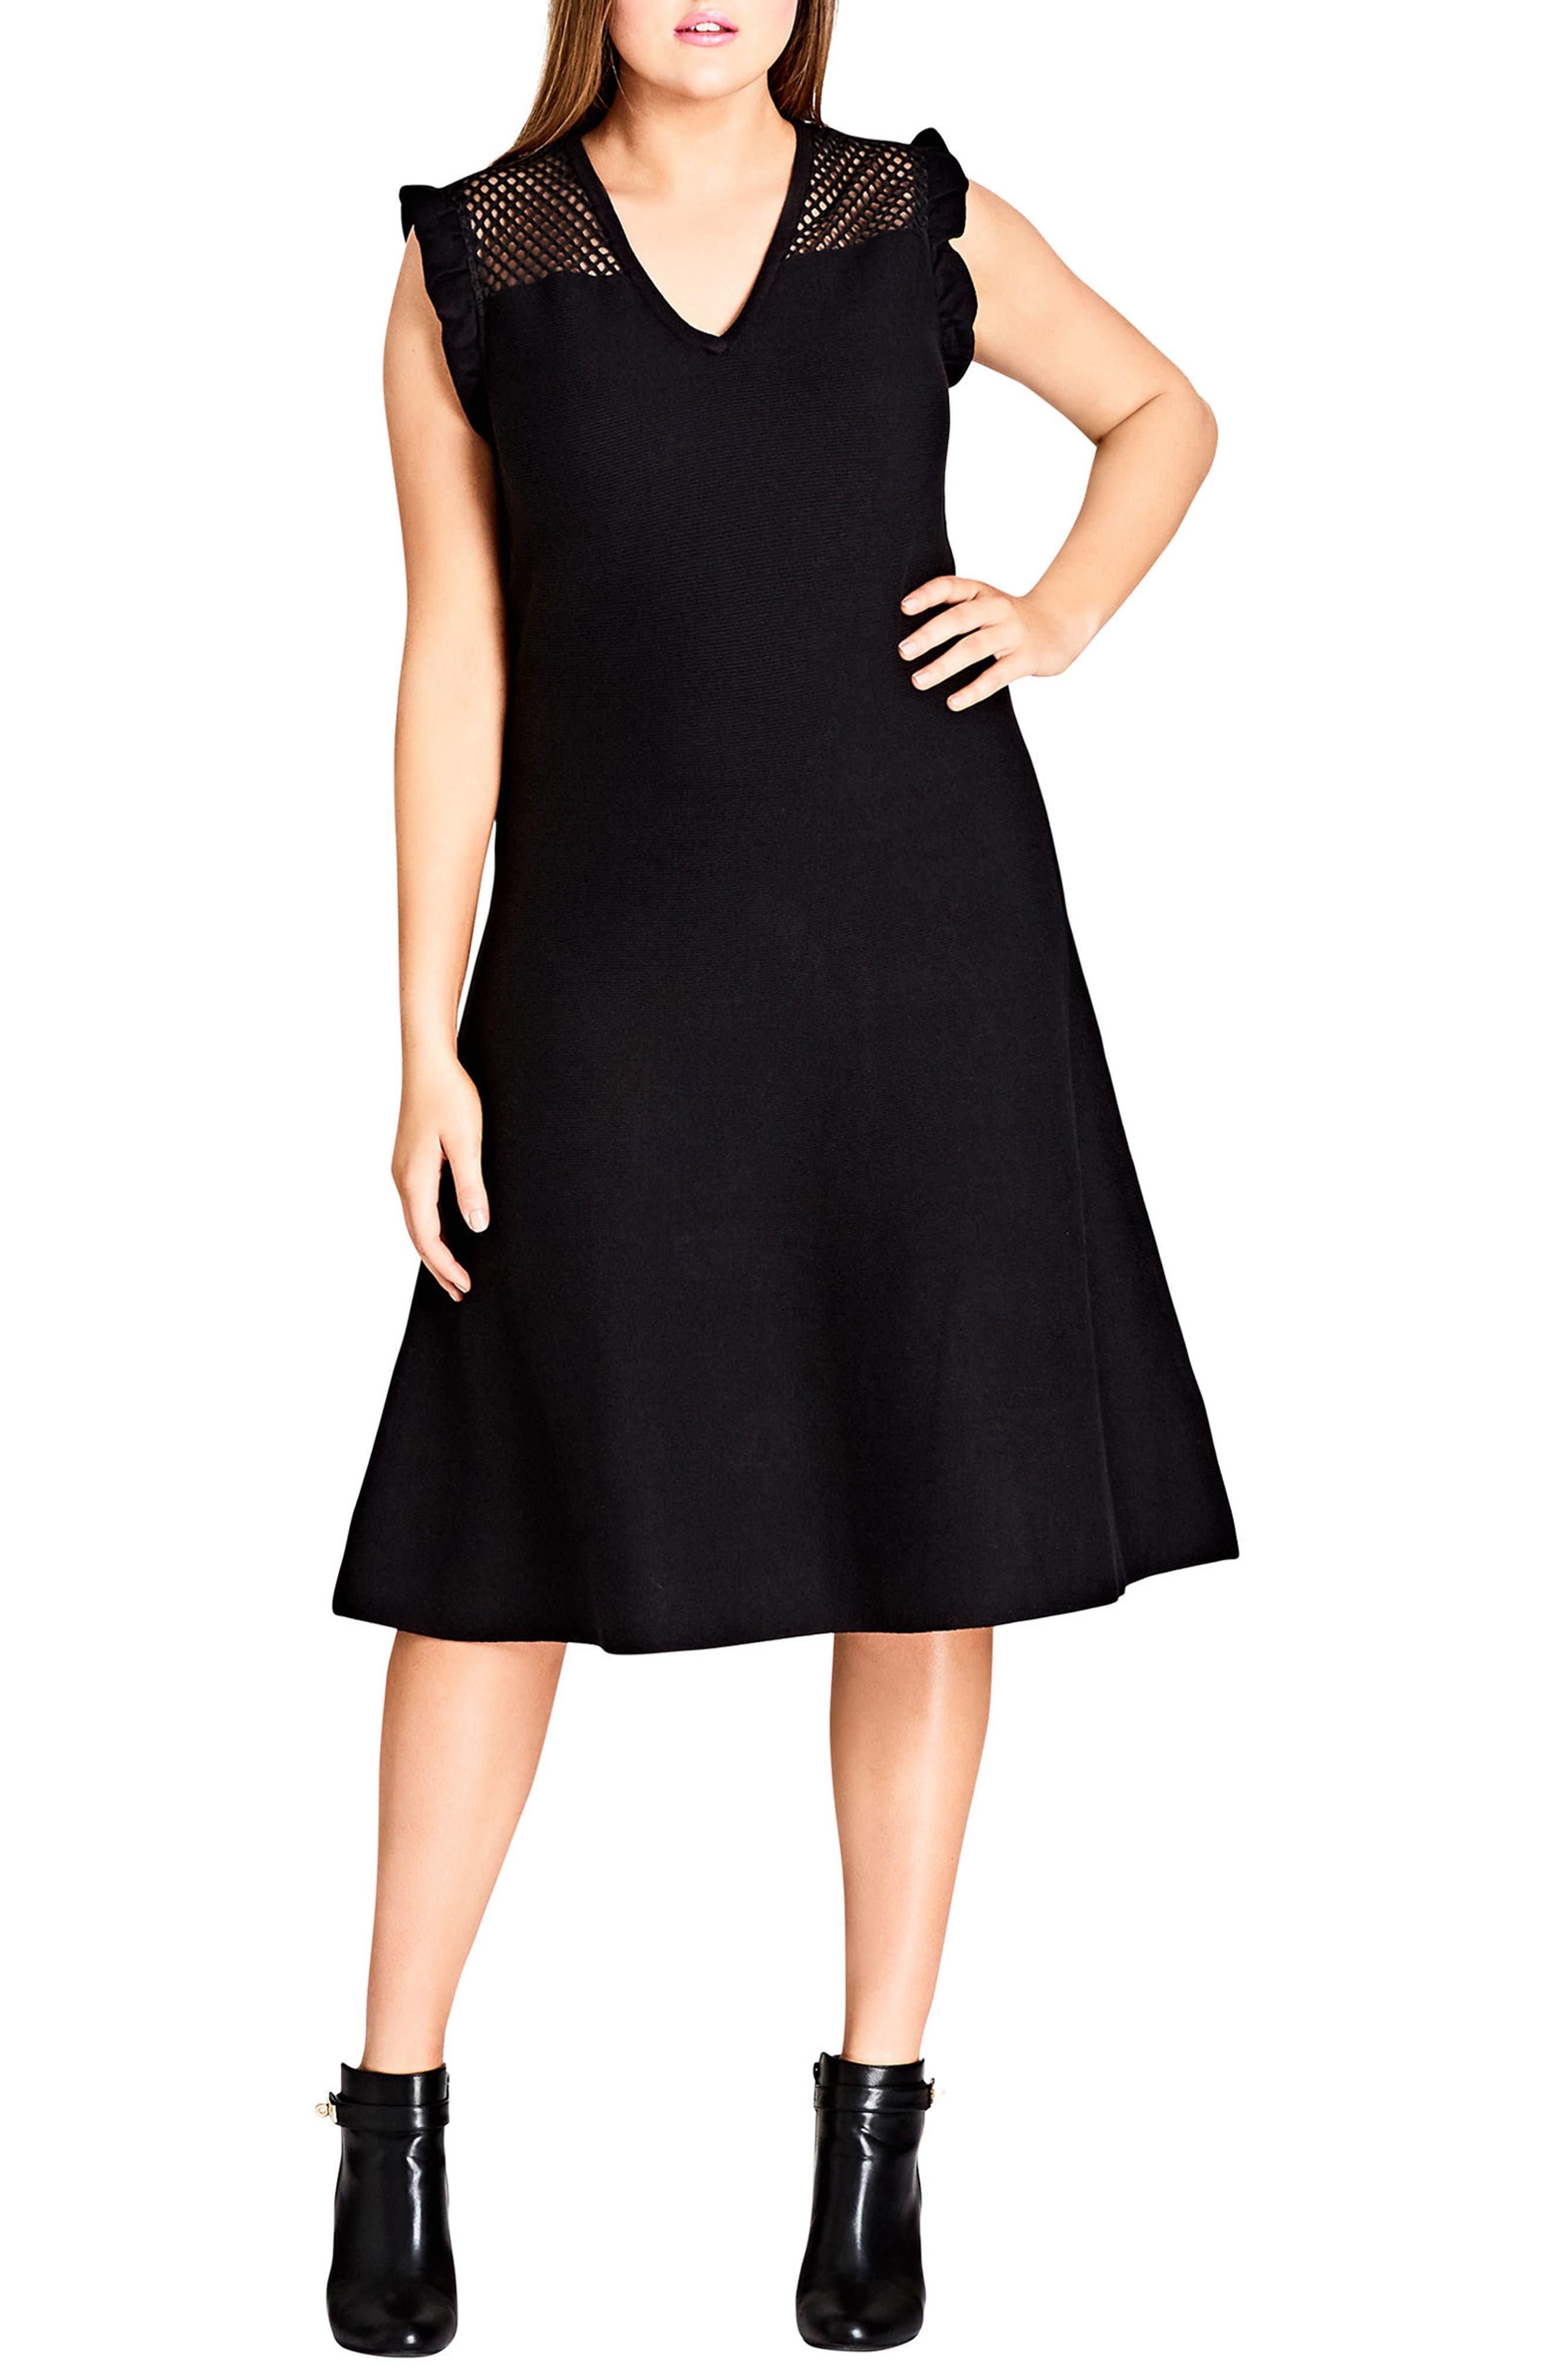 CITY CHIC Charmer Fit & Flare Midi Dress, Main, color, 001